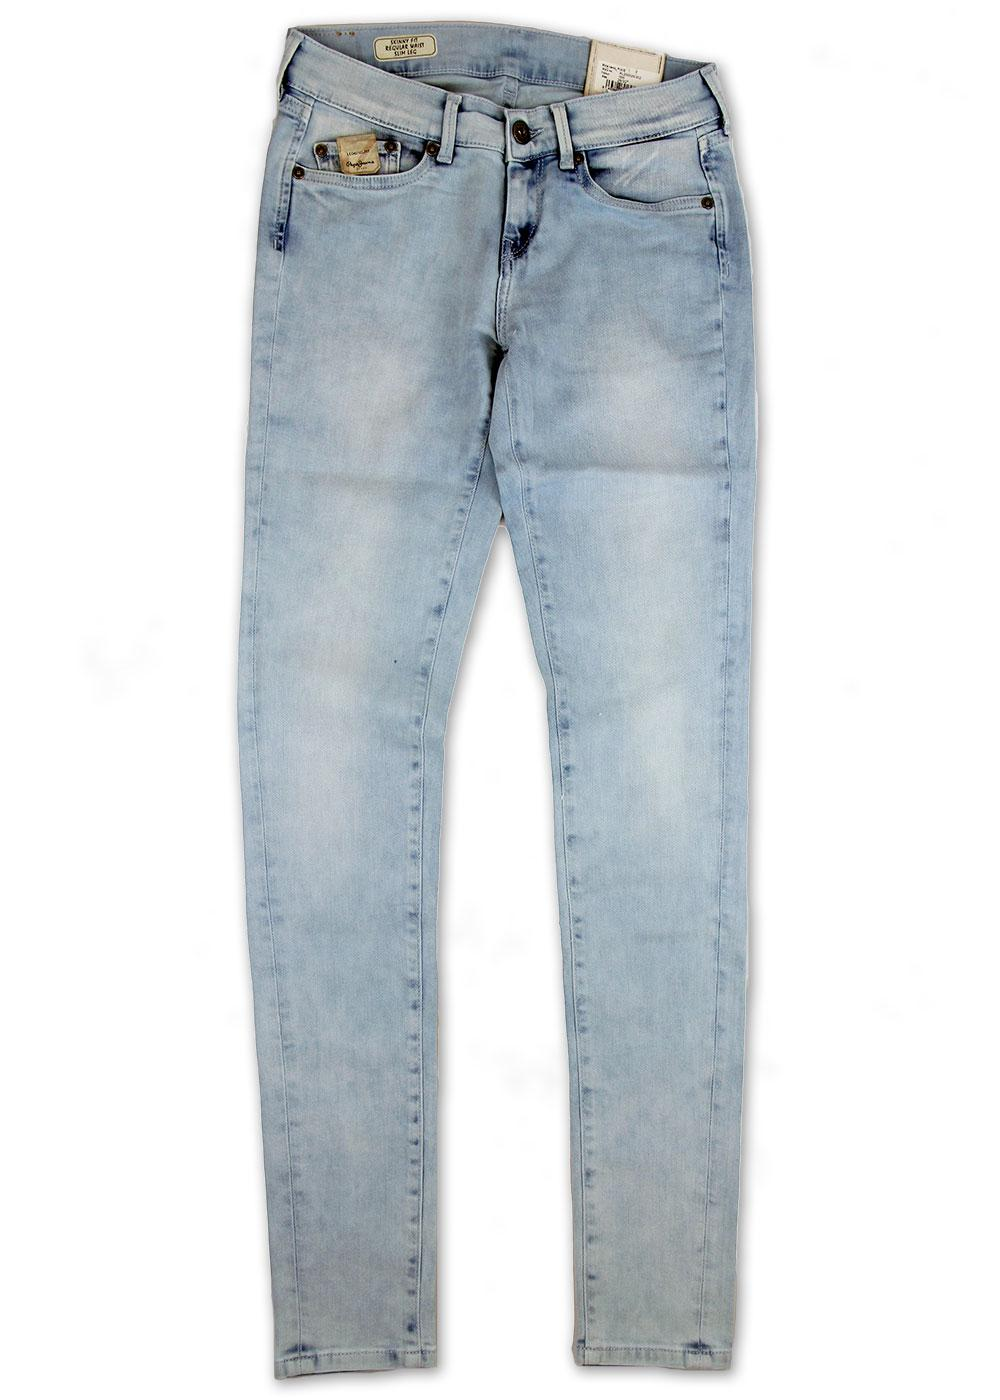 PEPE JEANS Pixie Retro Indie Light Wash Skinny Denim Jeans dead53e22c